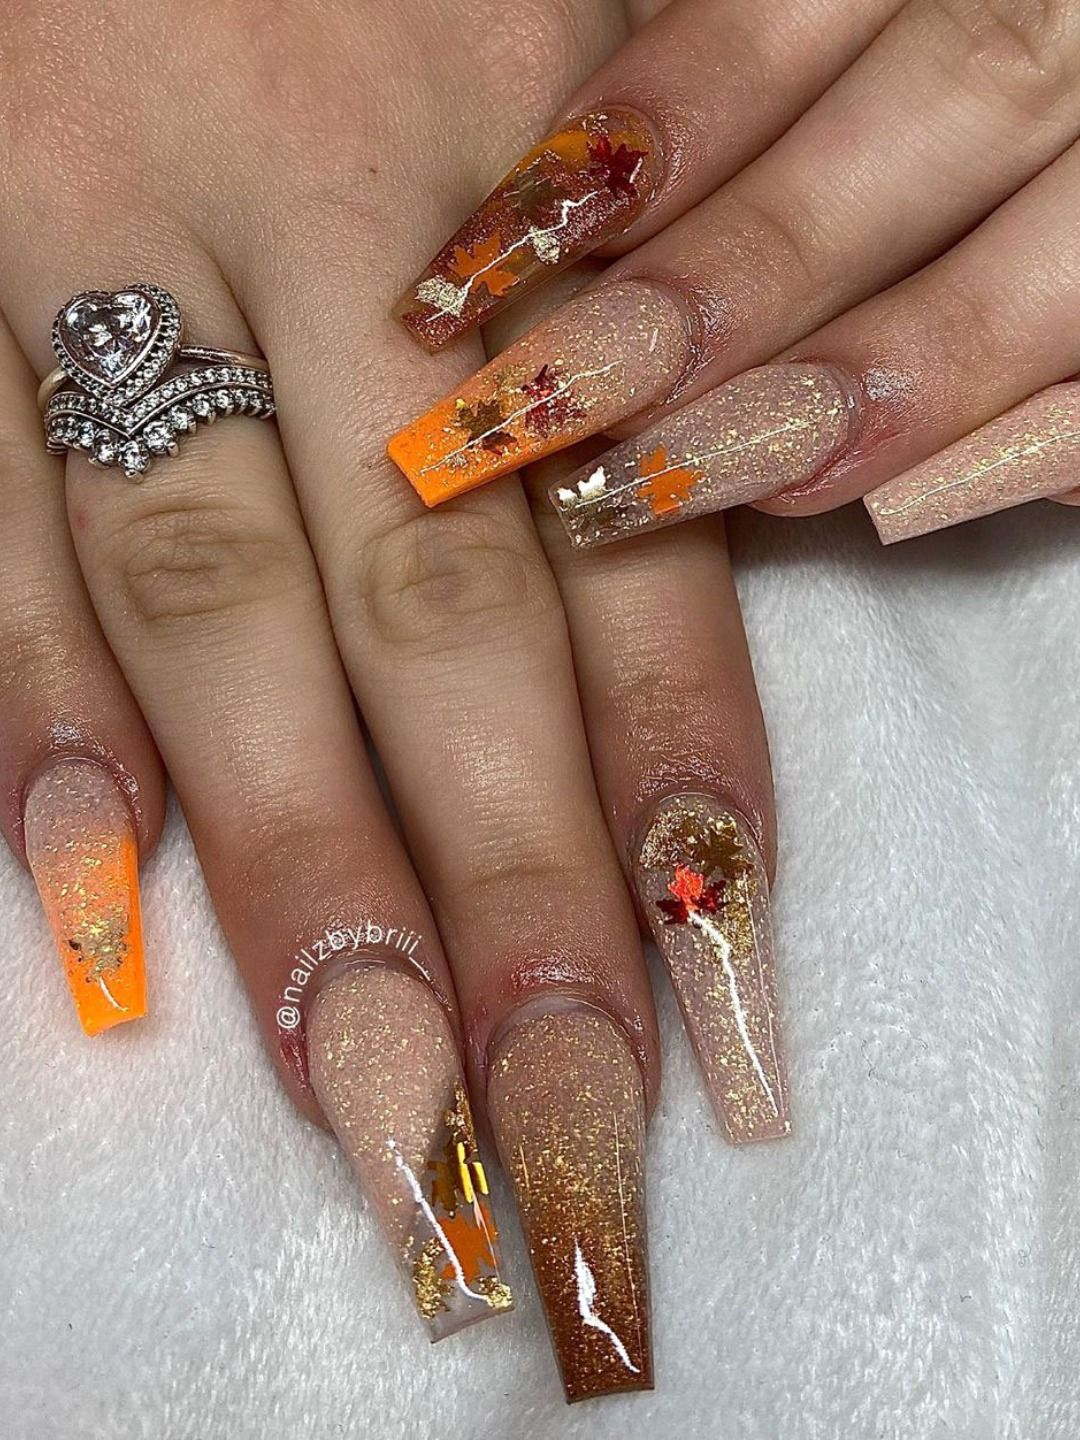 Most Beautiful Fall Nail Designs 2019 Stylish Belles Stylish Nails Art Fall Acrylic Nails Coffin Nails Designs